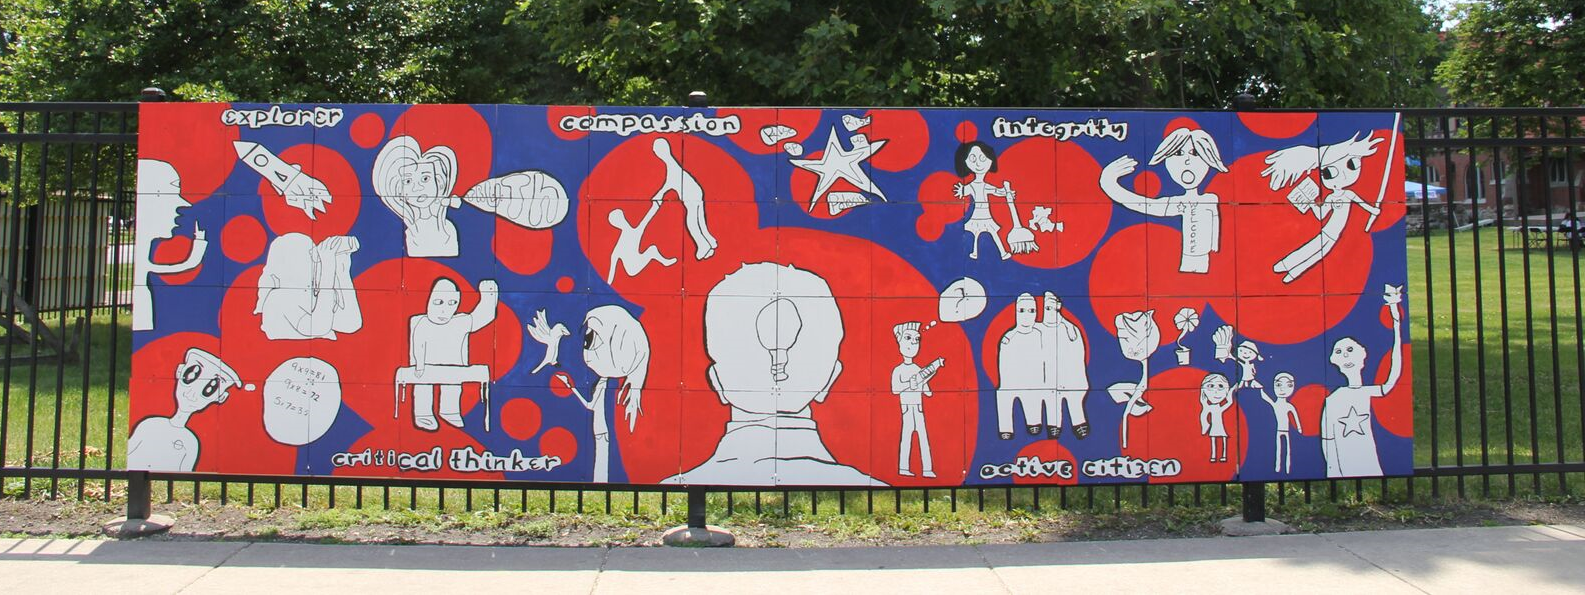 Polaris Academy Anti-Bullying Mural, 2011